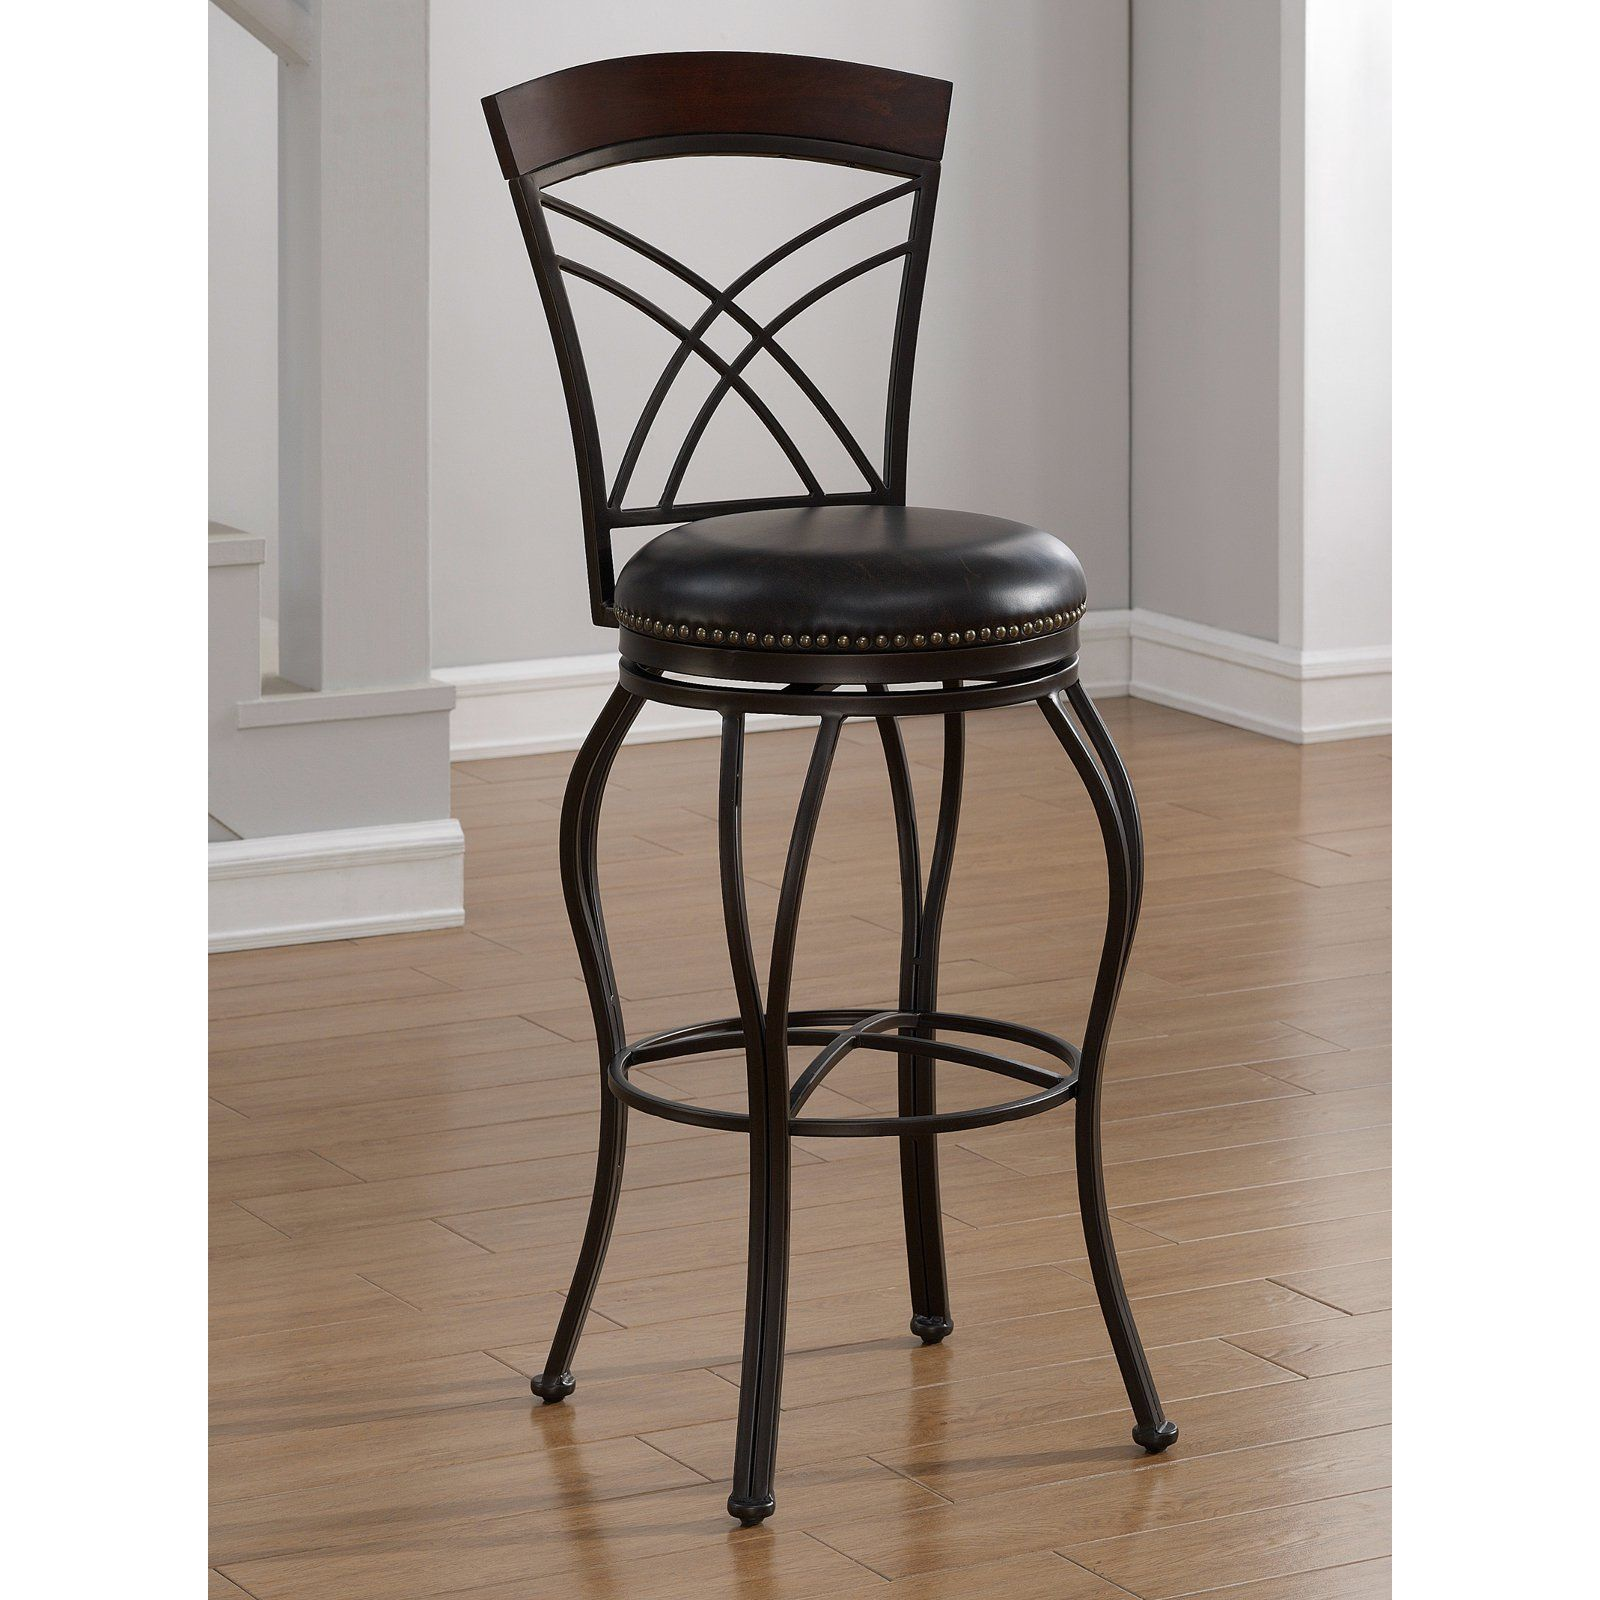 American heritage billiards caprice extra tall bar stool from hayneedle com